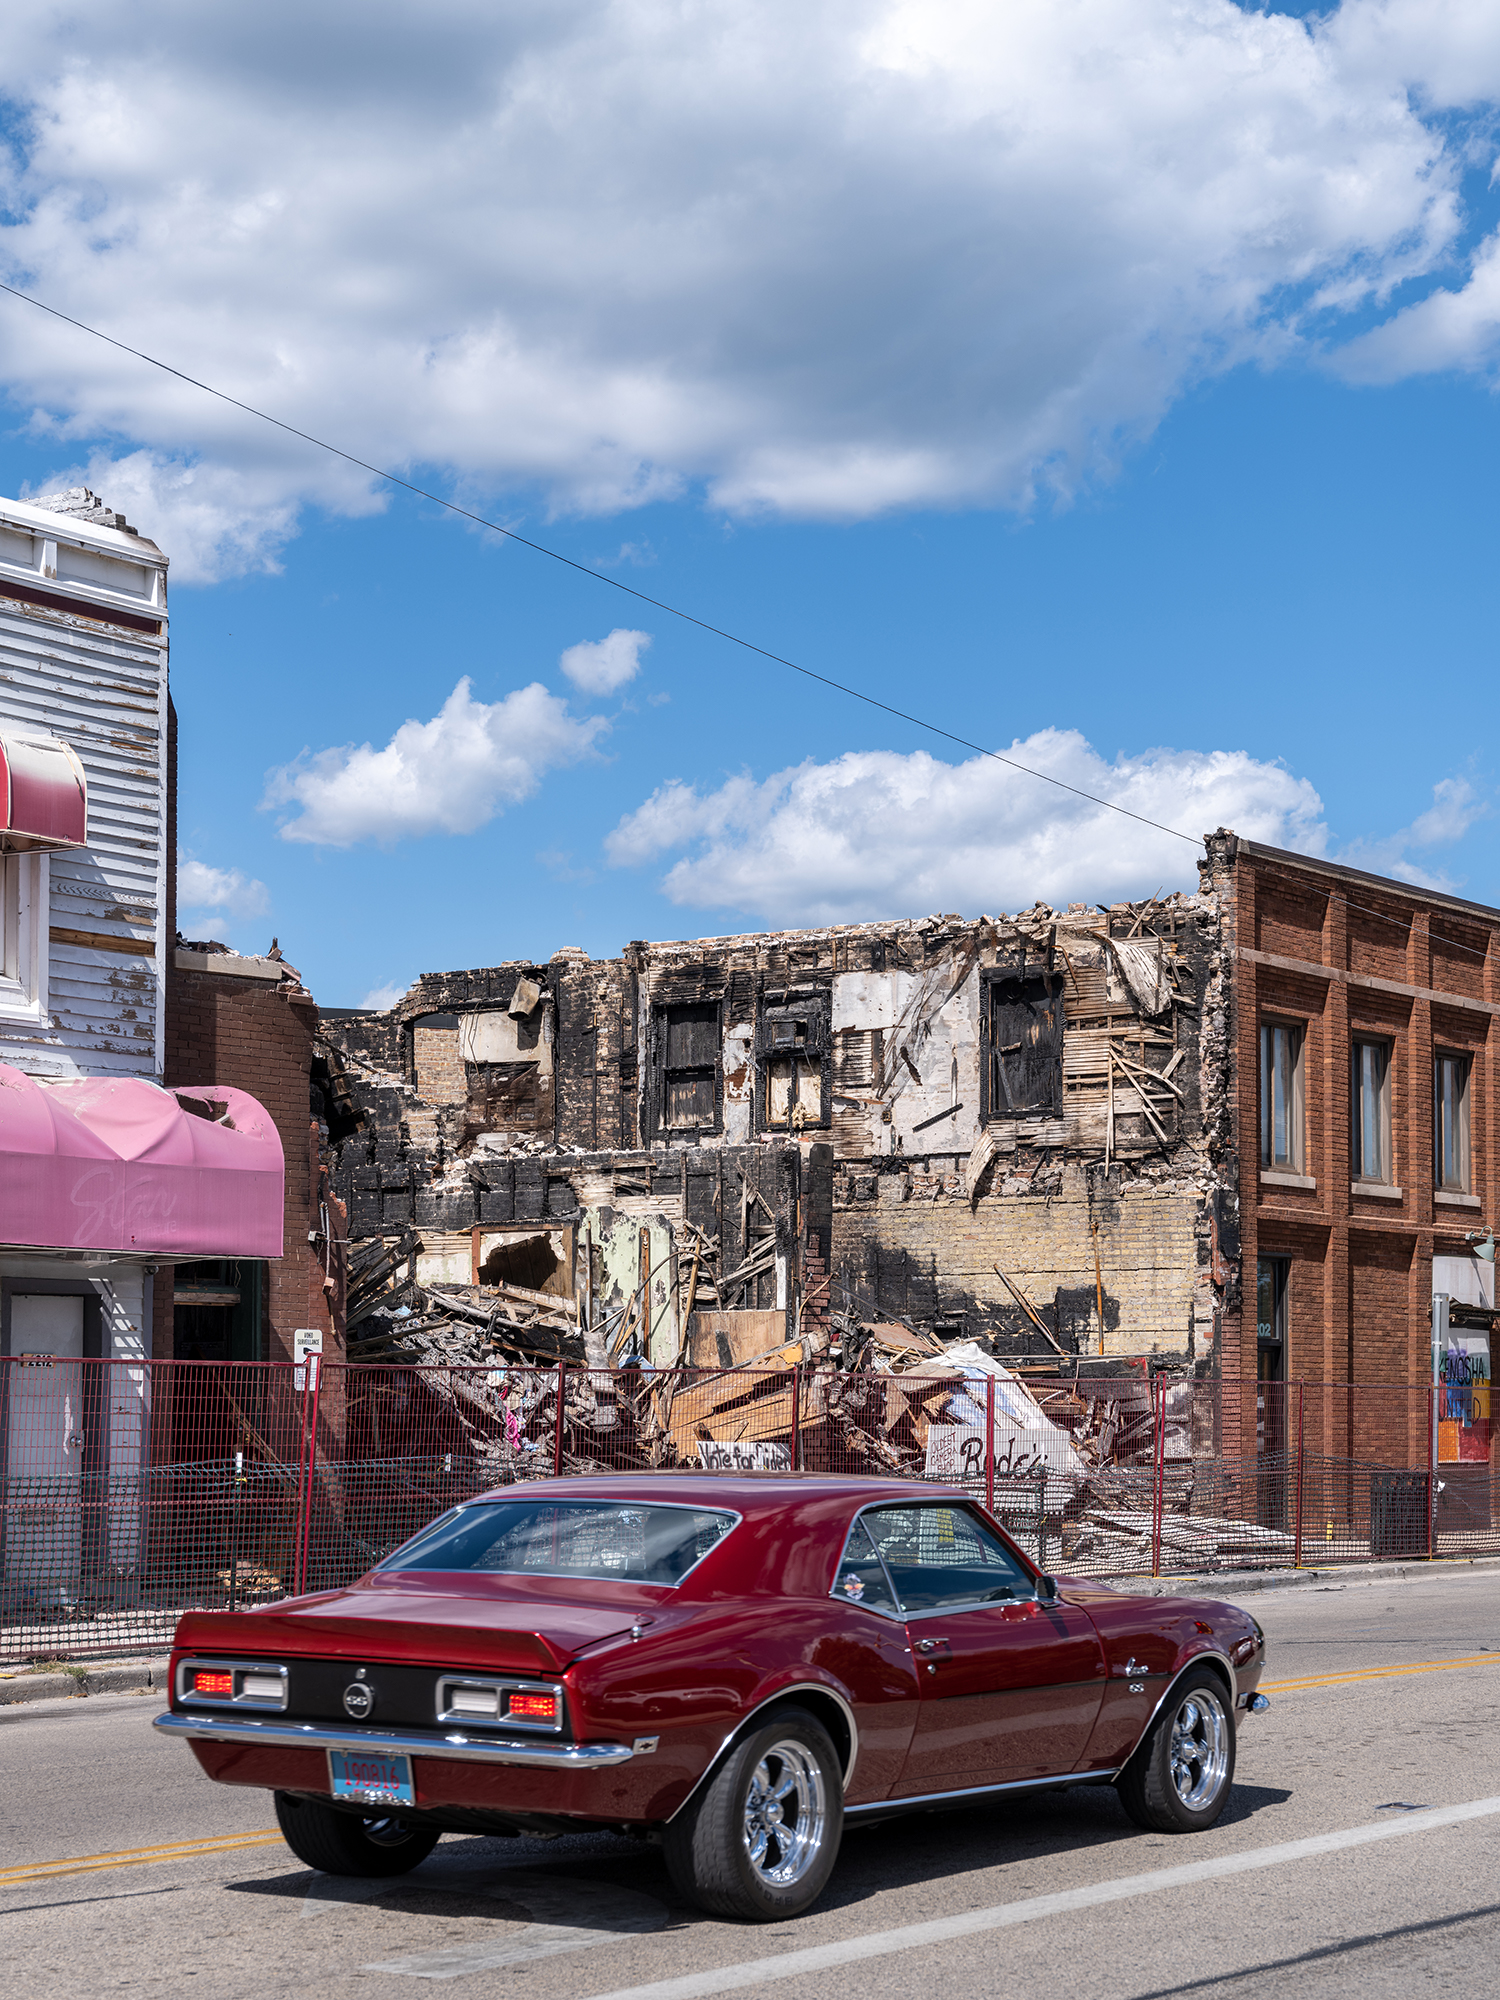 A Car Drives Past a Burned-Out Camera Store